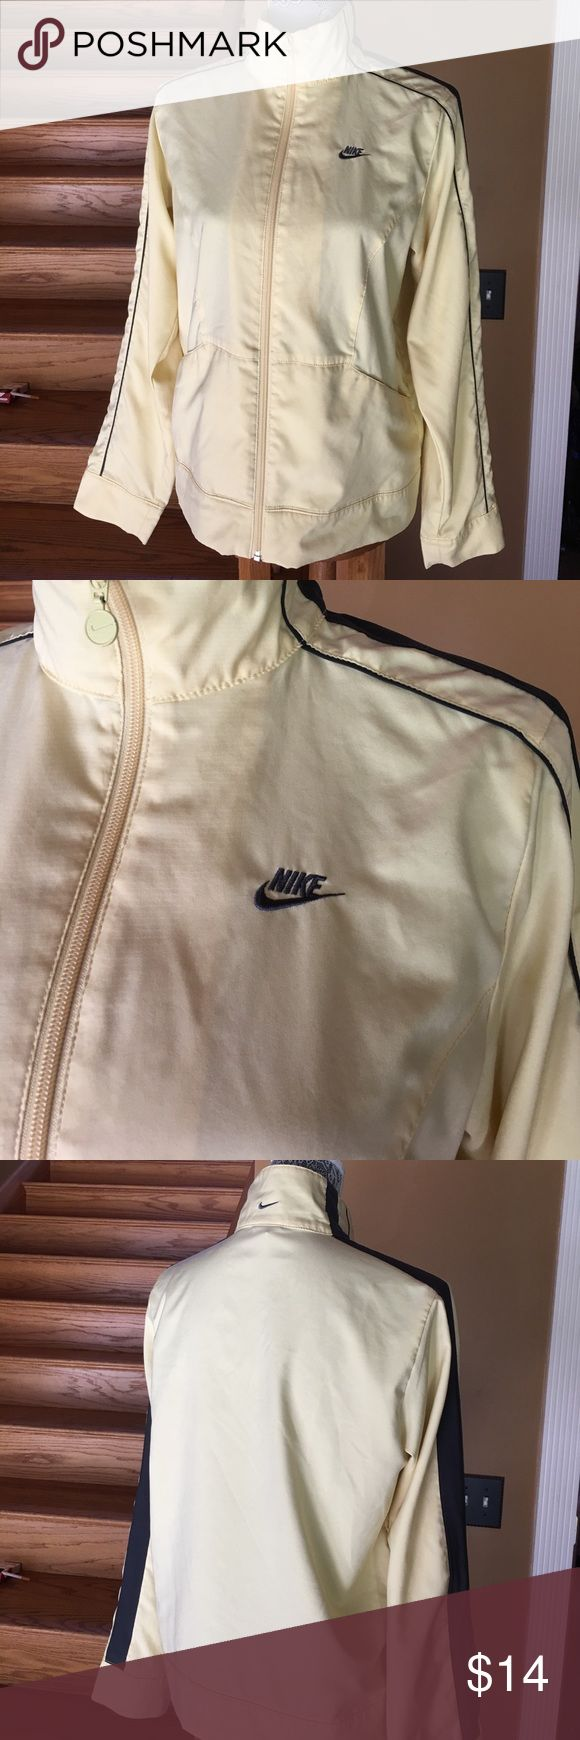 Yellow Nike running jacket Lite Yellow Nike running jacket size medium excellent condition worn a handful of times Nike Jackets & Coats